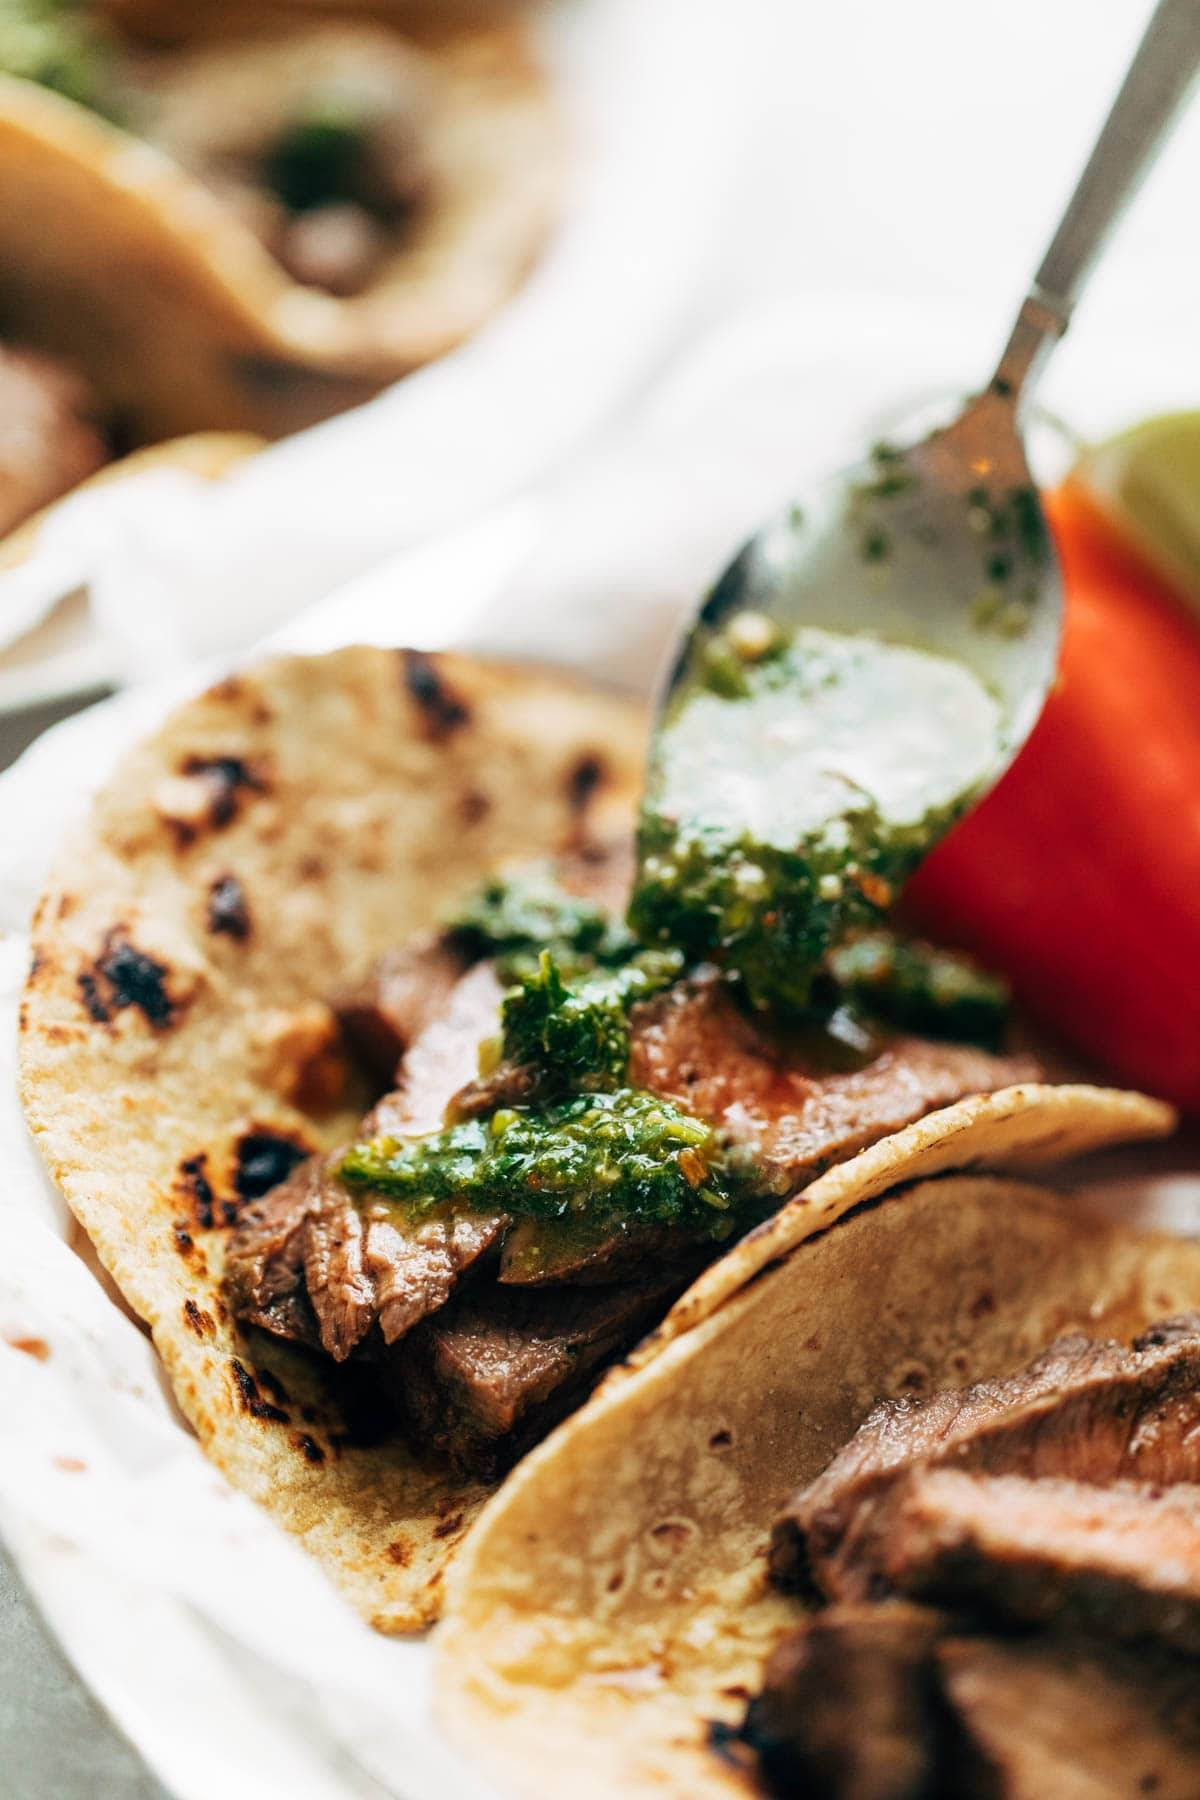 Chimichurri Steak Tacos drizzled with chimi sauce